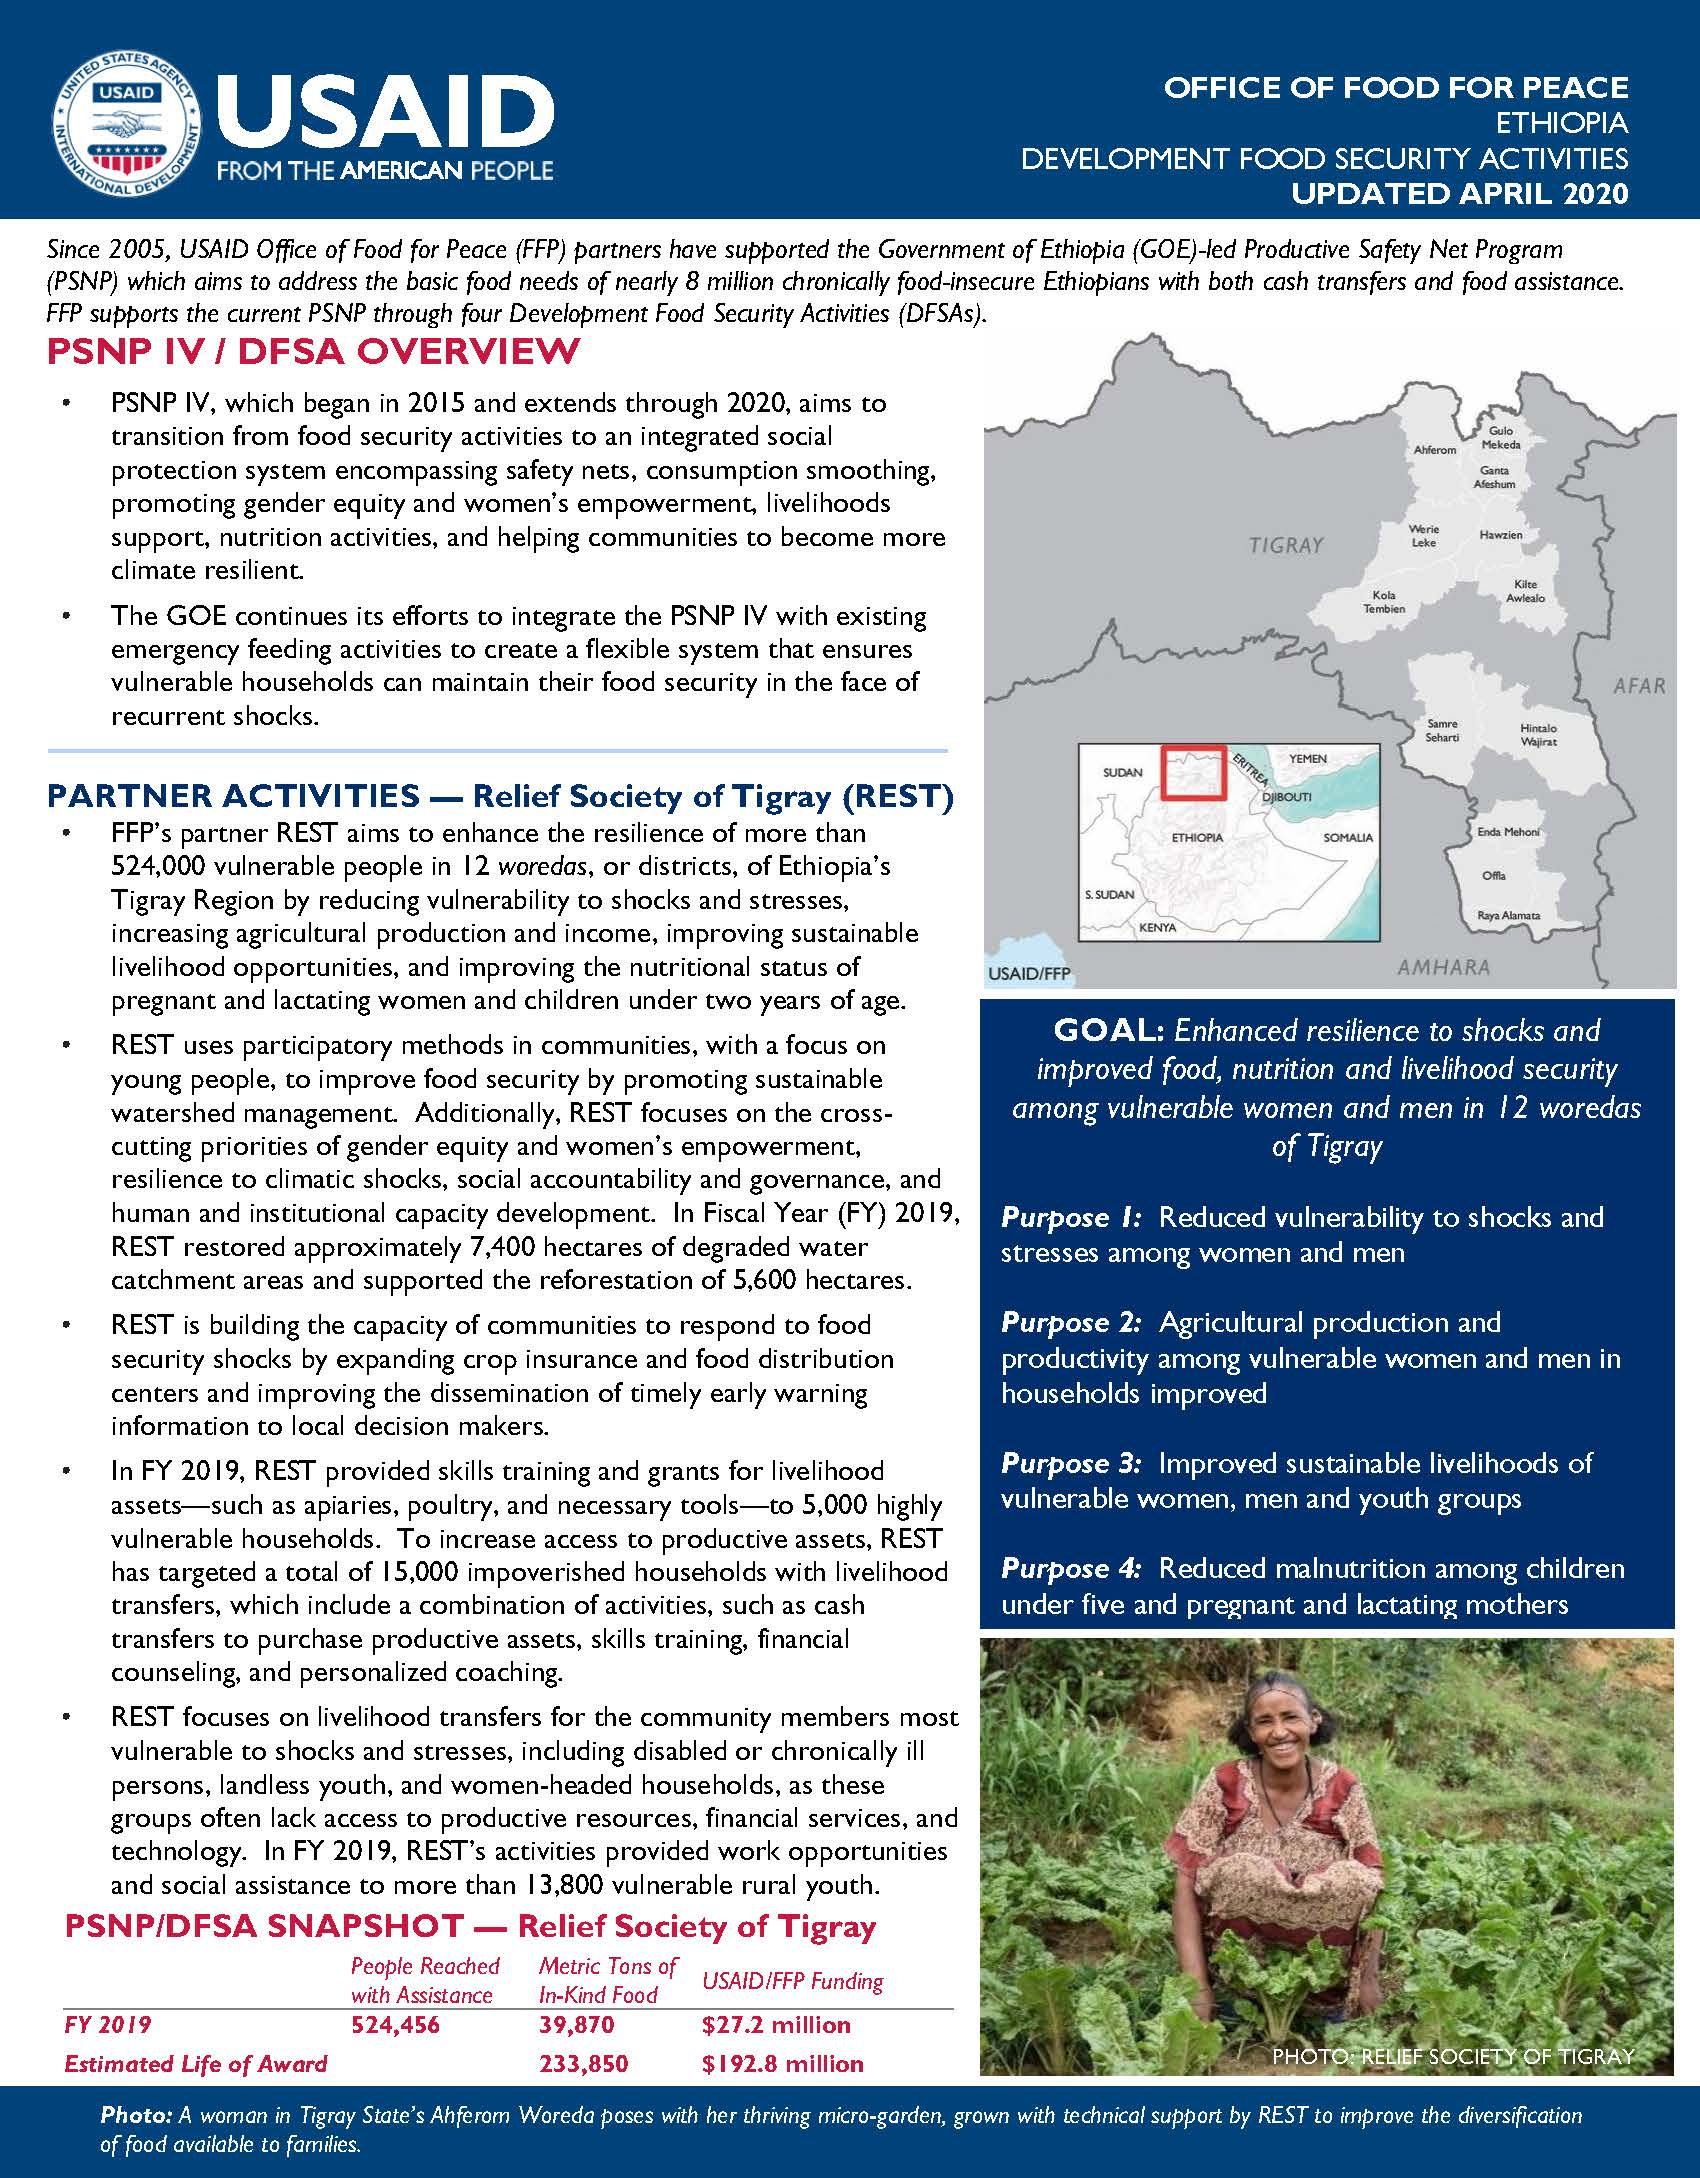 FY 2019 Ethiopia DFSA Fact Sheet - Relief Society of Tigray